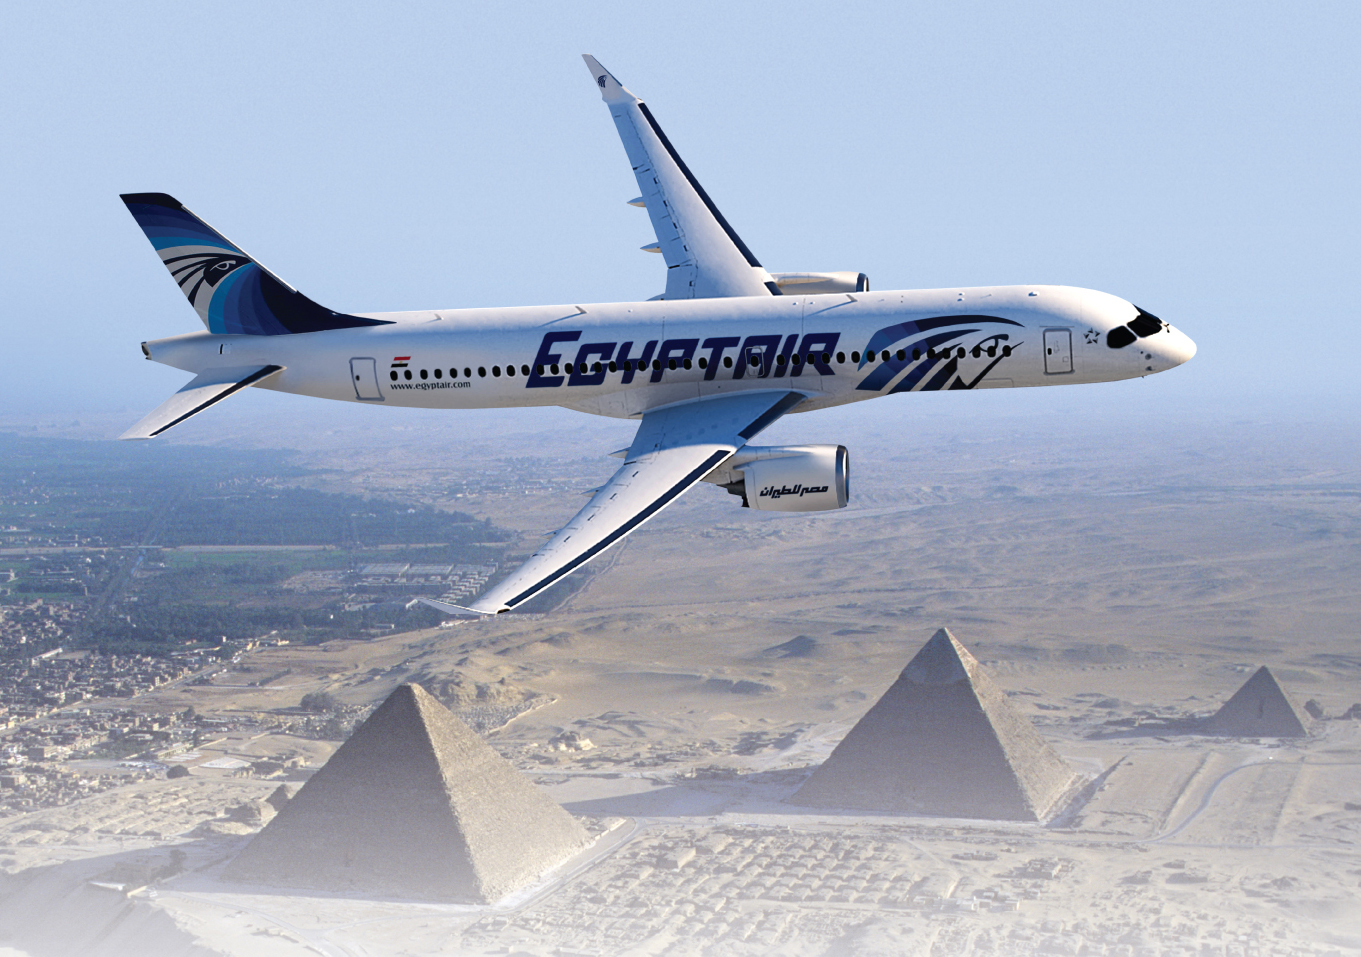 Travelling to Luxor by Egyptair